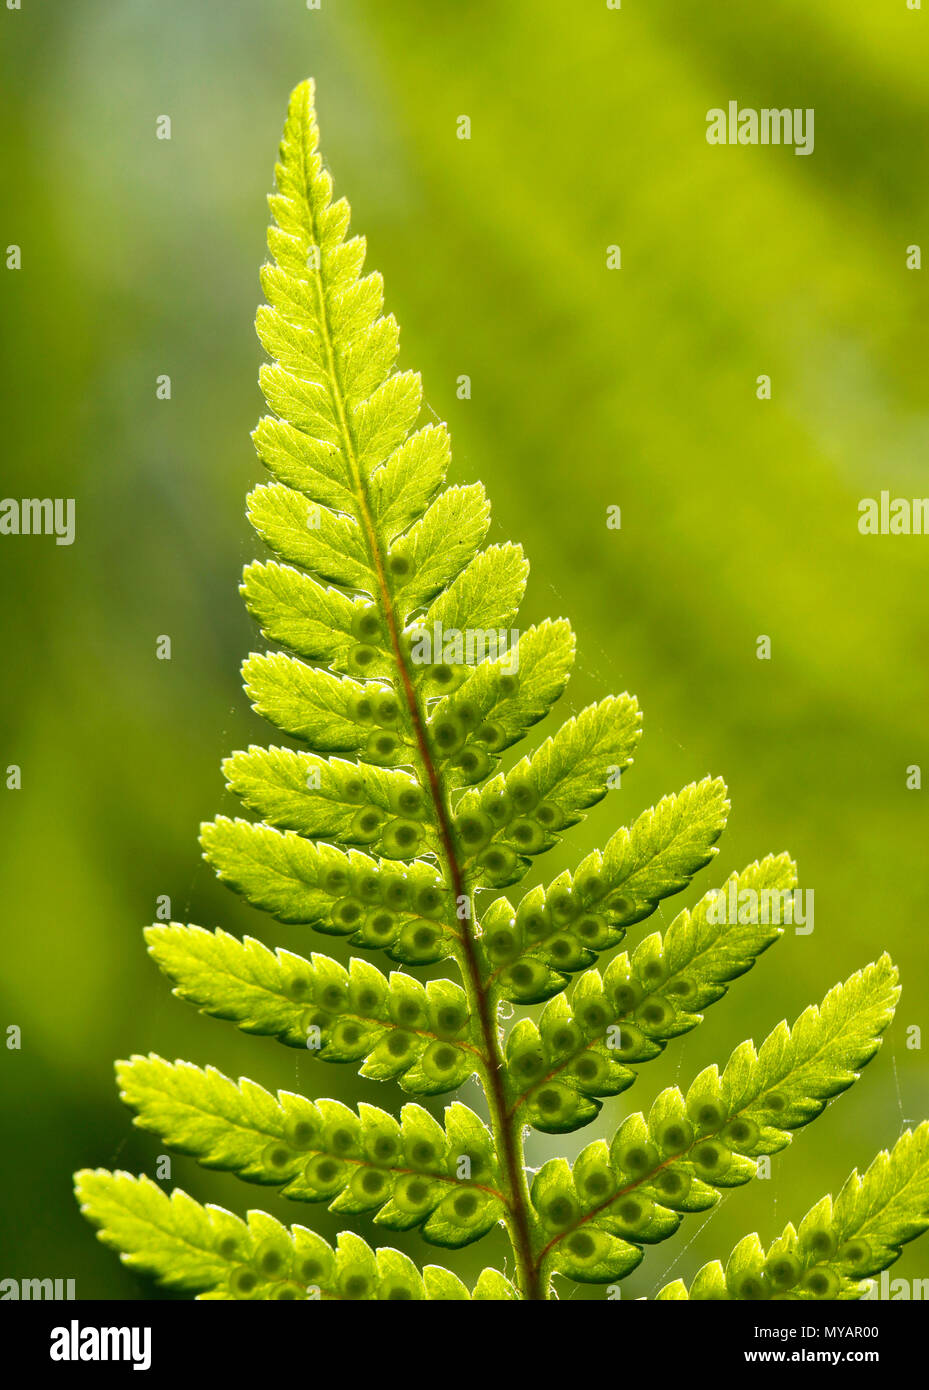 Divided leaf of the ostrich fern, Matteuccia struthiopteris, with developing spores. - Stock Image